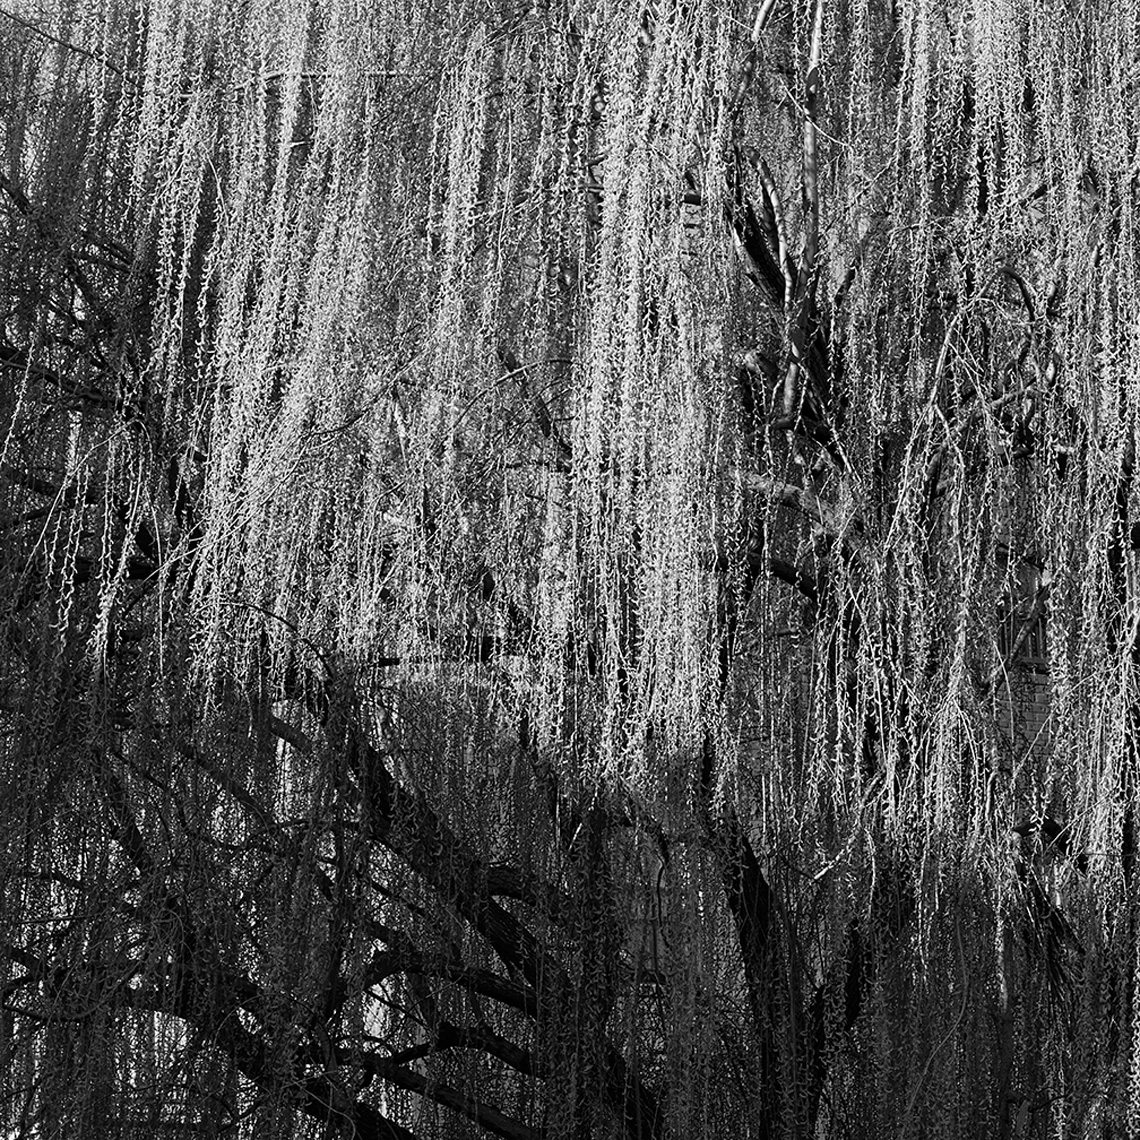 03-26-2016_willow_shadow